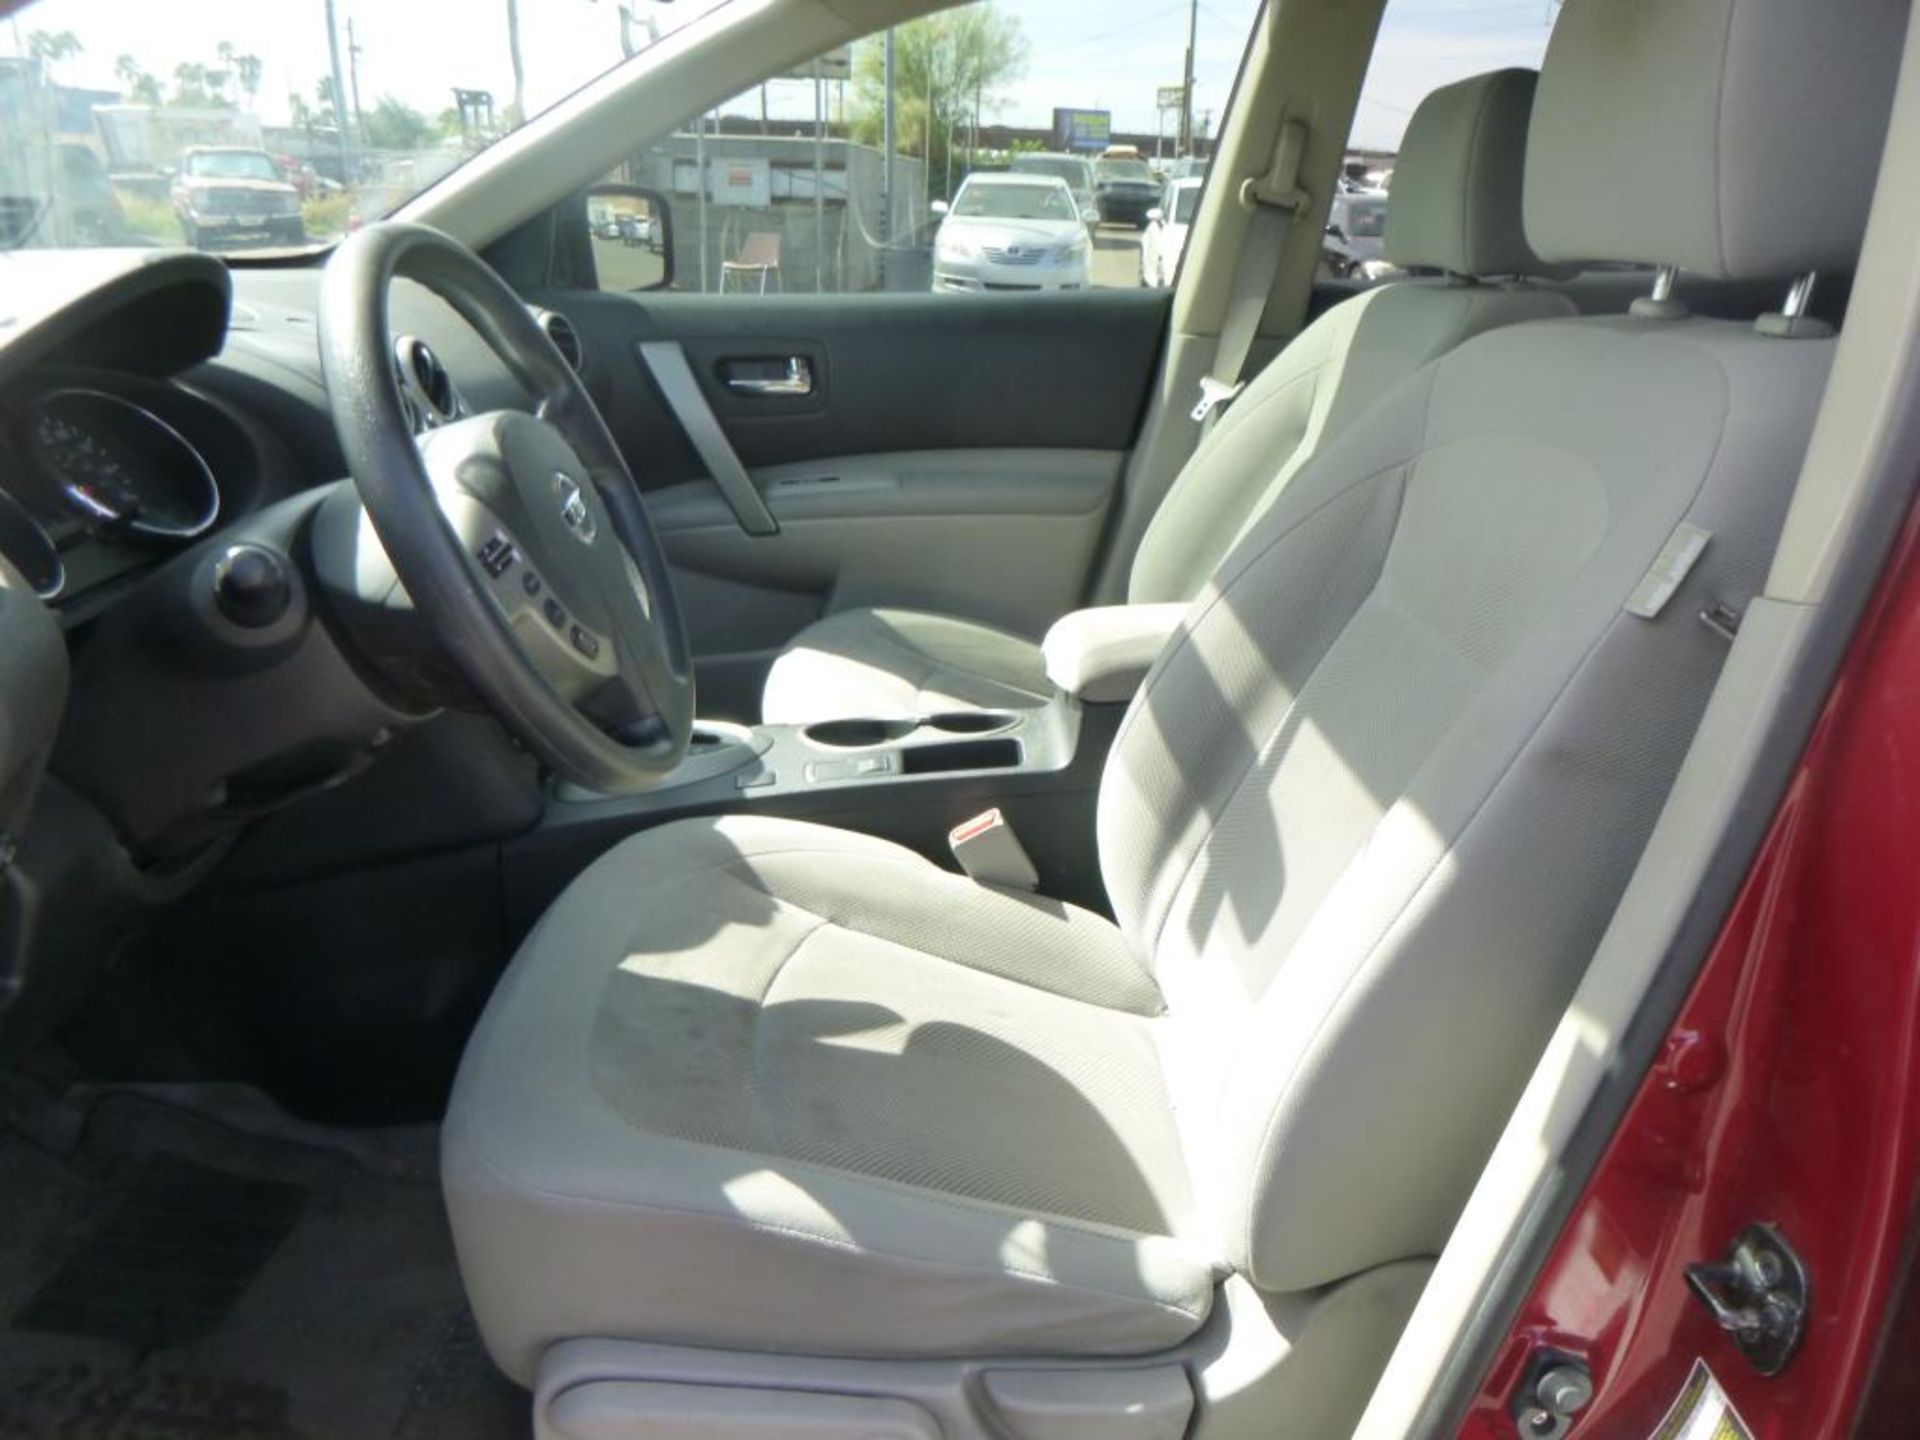 2012 Nissan Rogue - Image 10 of 14